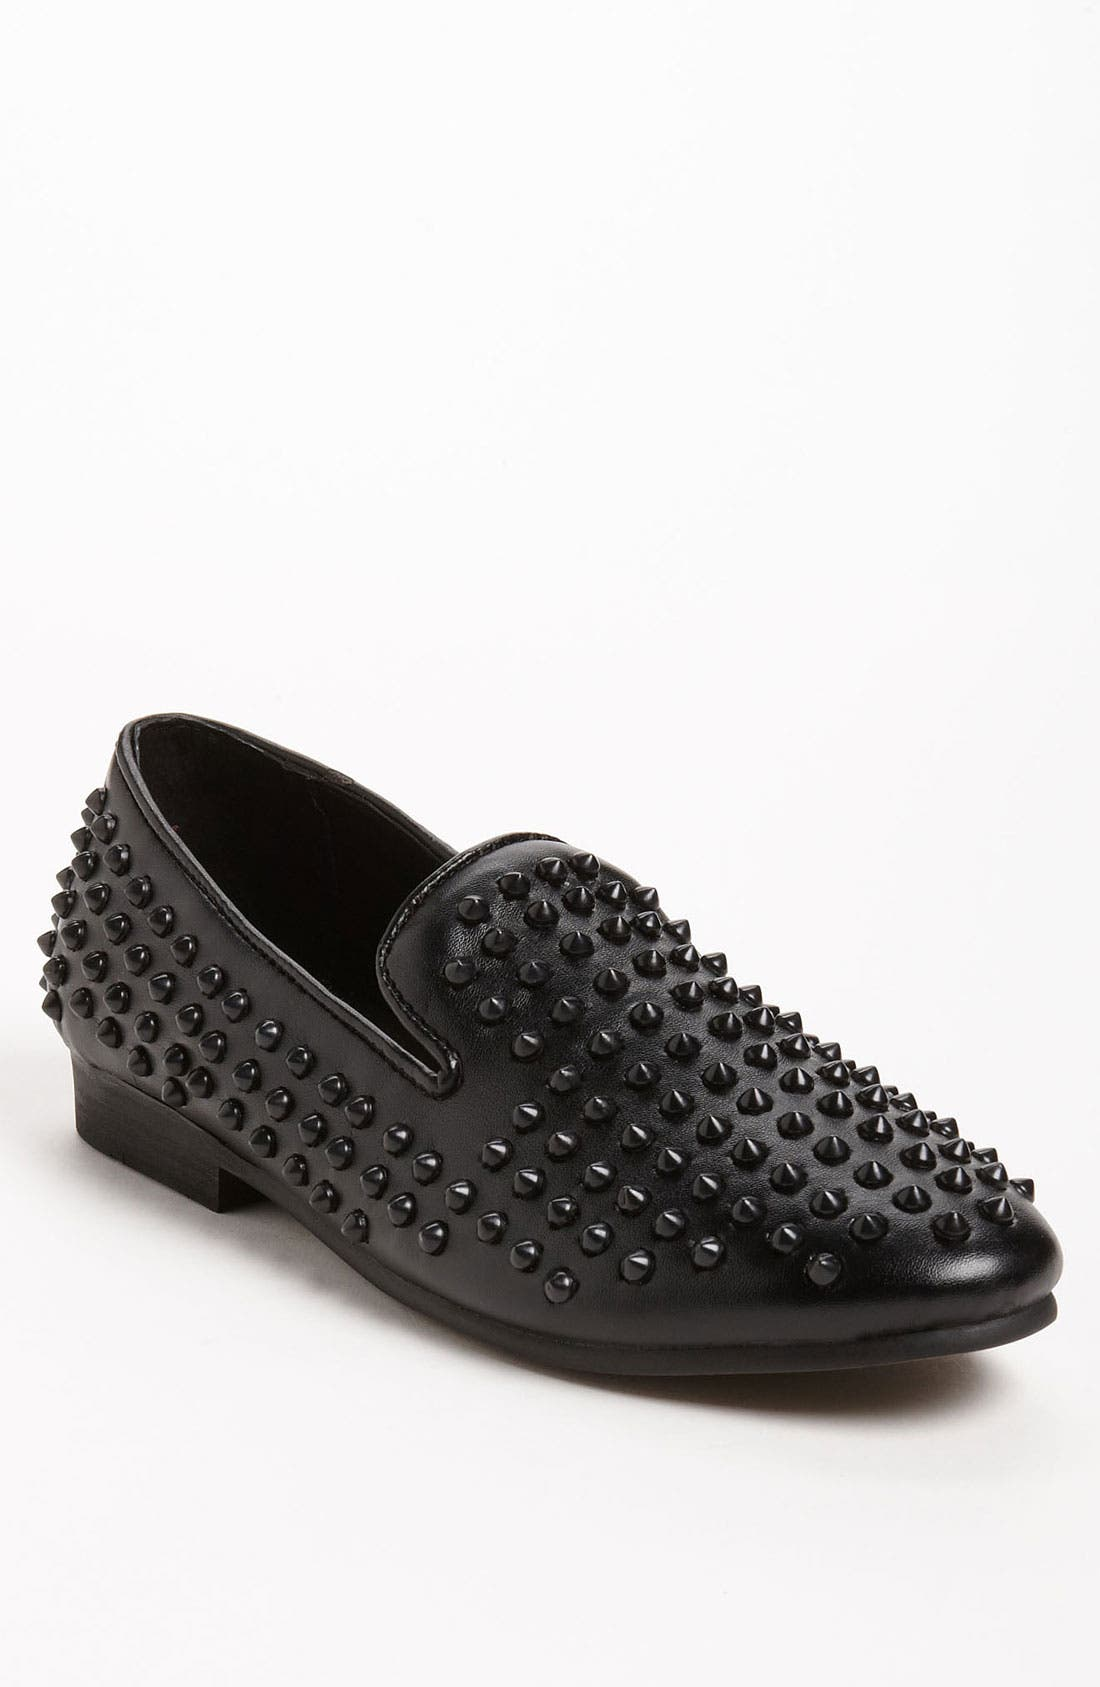 Alternate Image 1 Selected - Steve Madden 'Jagggrr' Studded Loafer